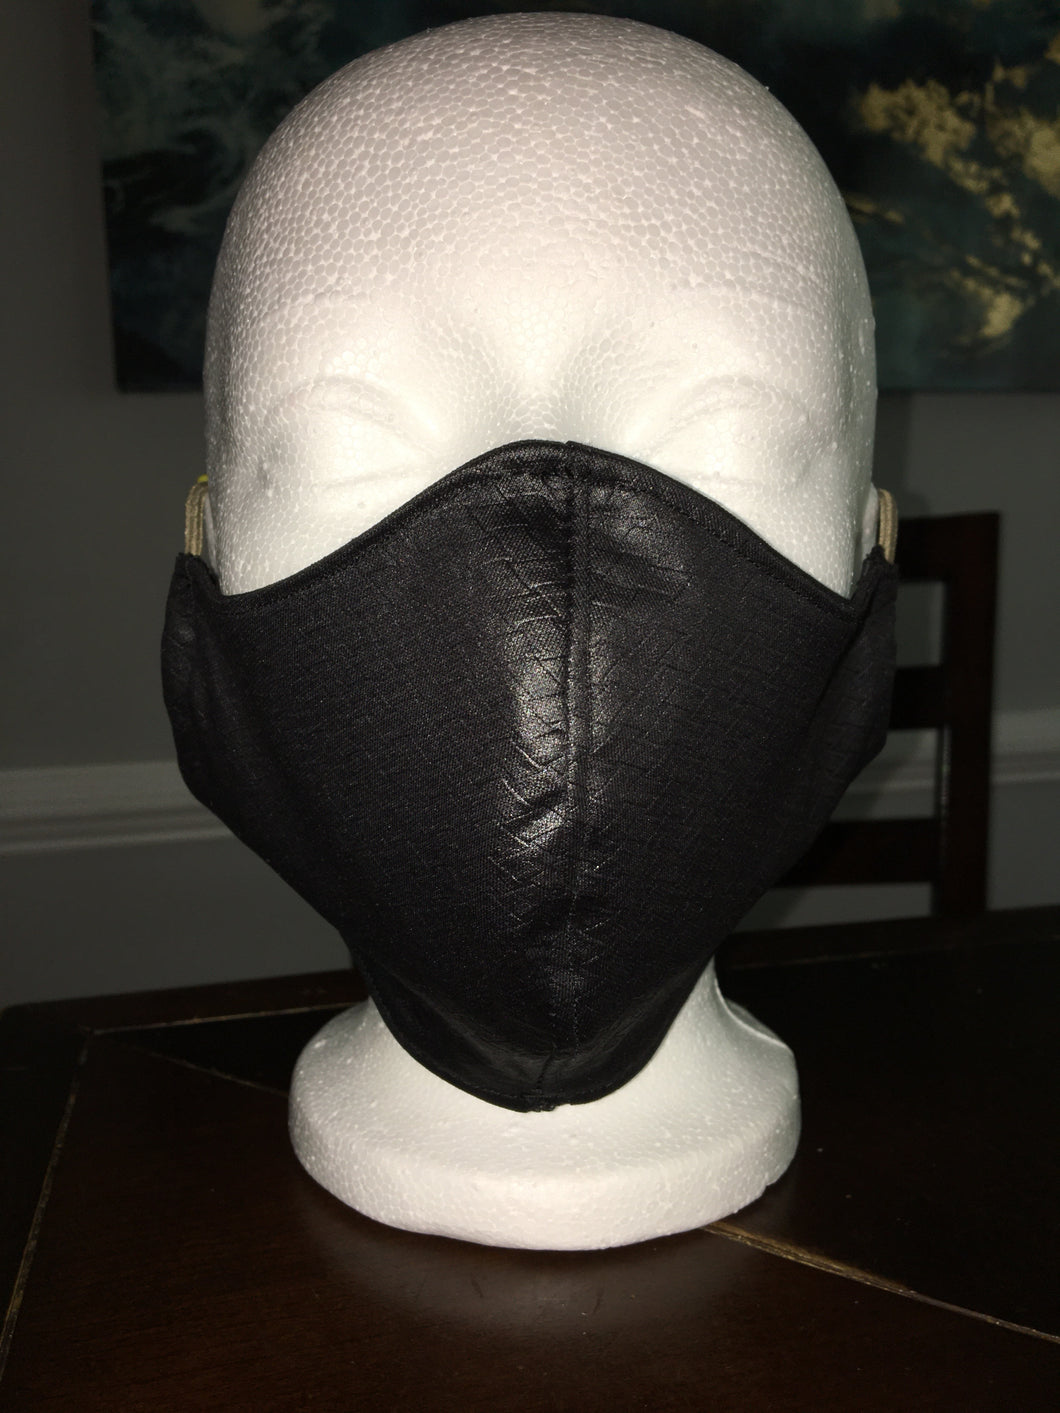 LINKUEI REUSABLE MASK